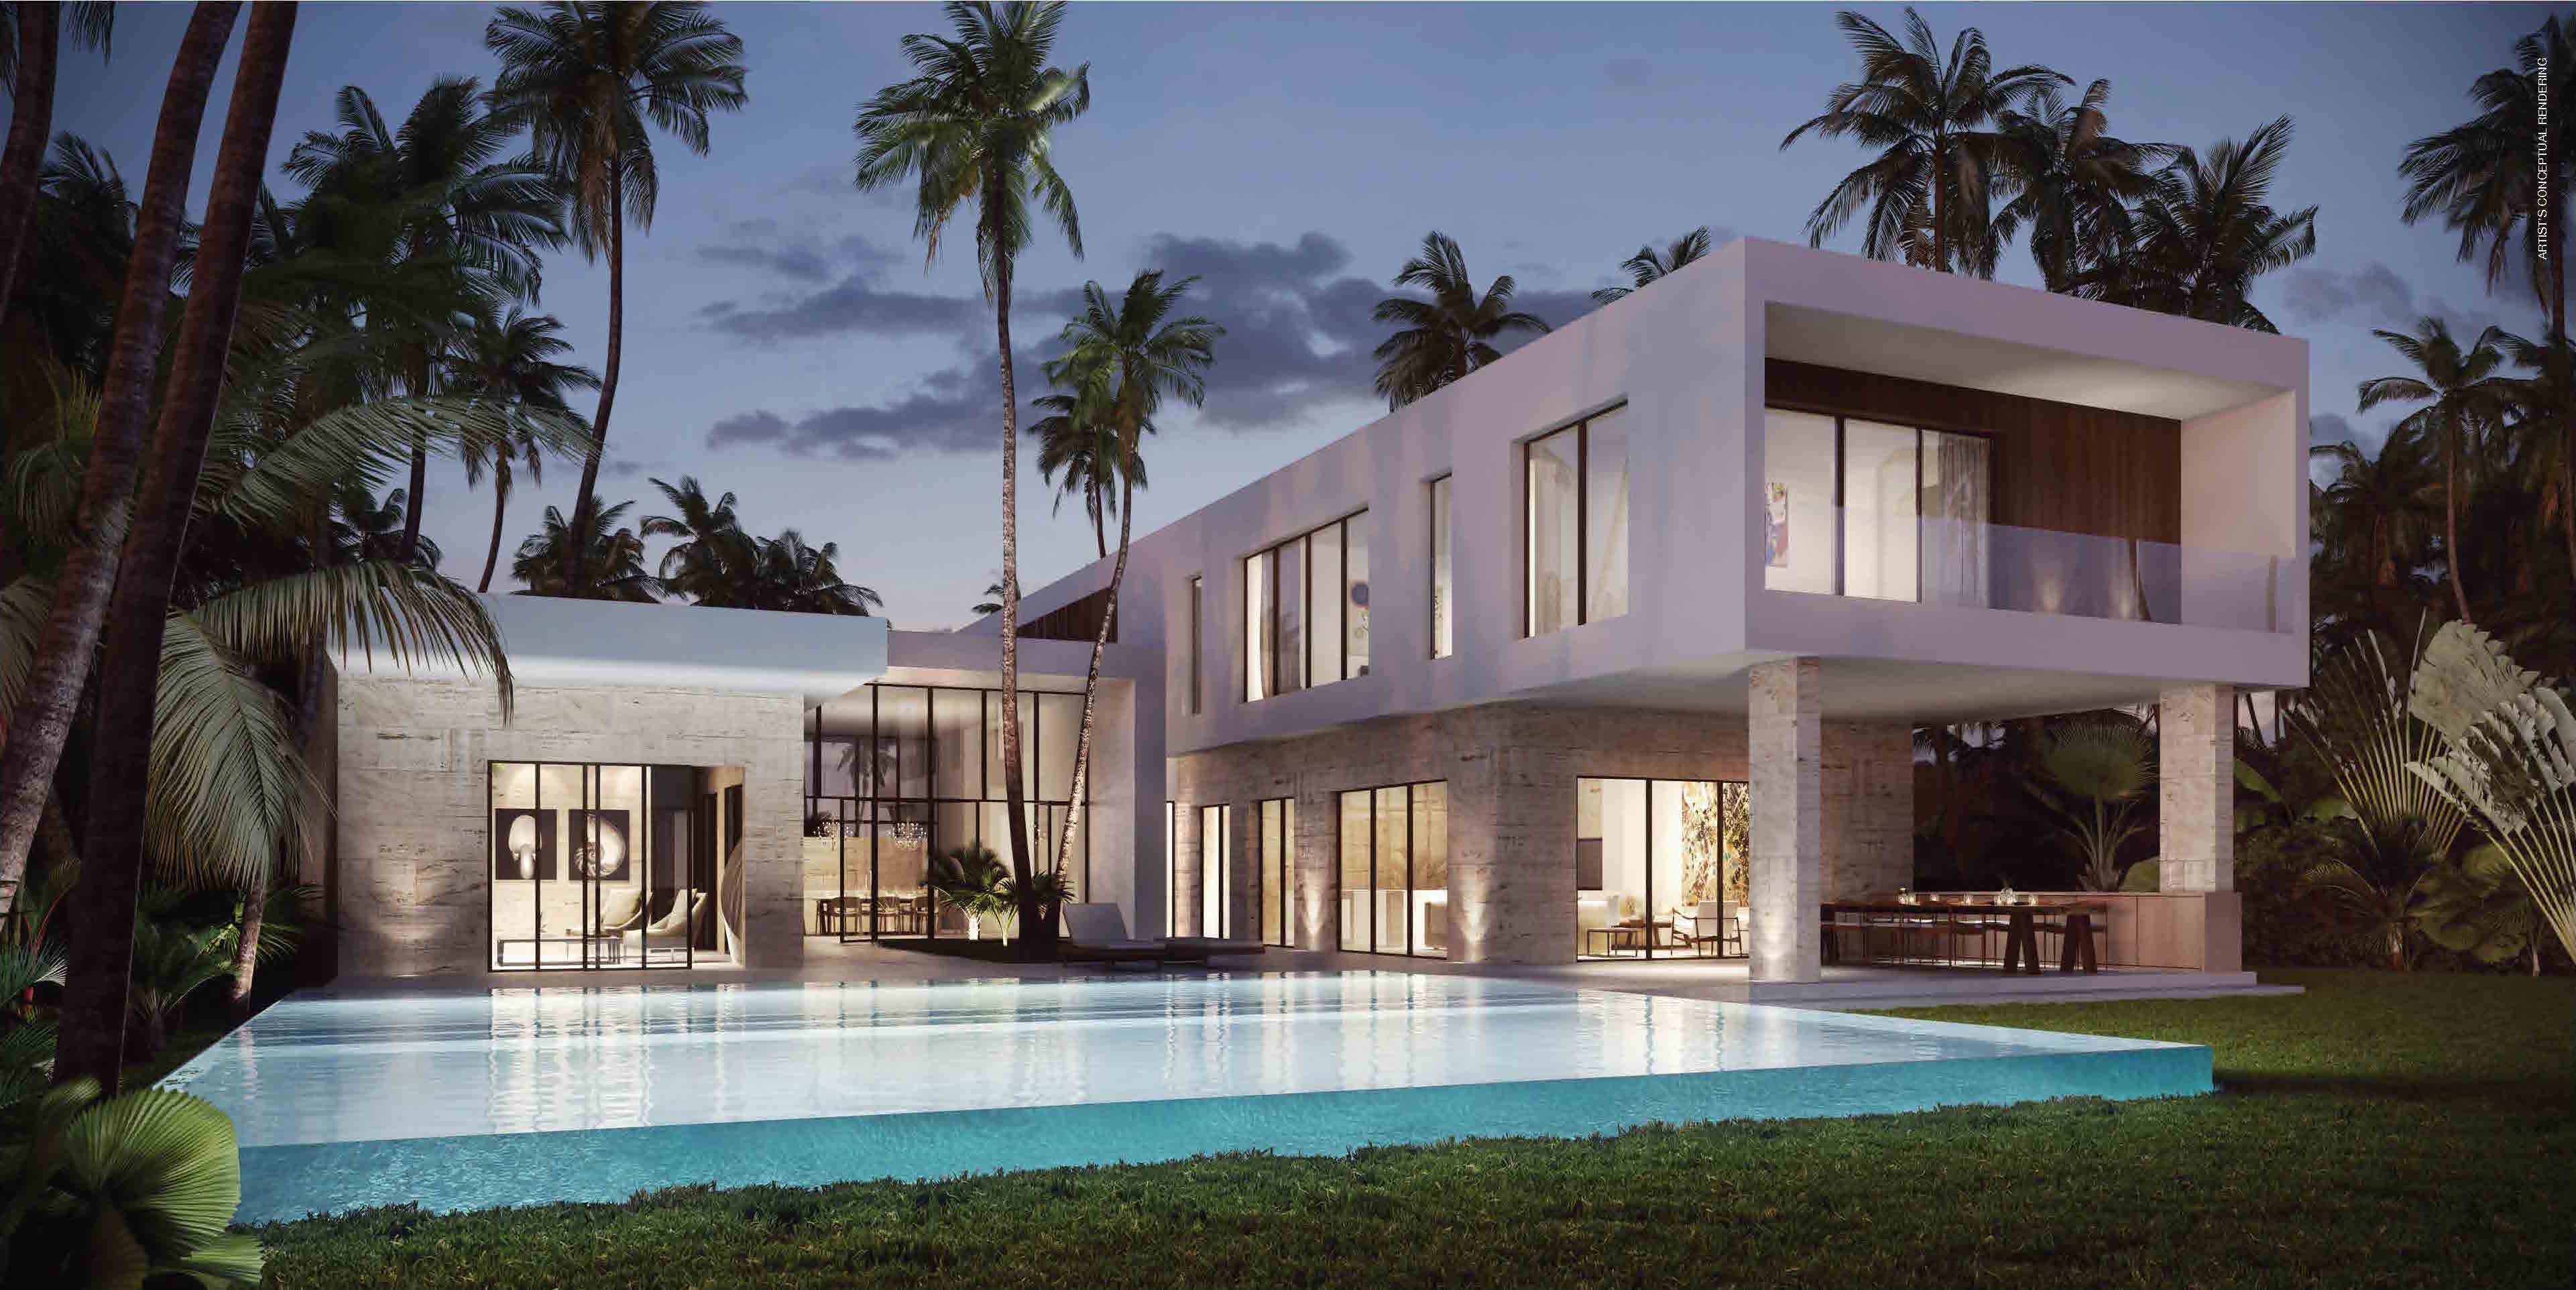 Botaniko weston ultra modern luxury in weston florida for Ultra modern house plans for sale